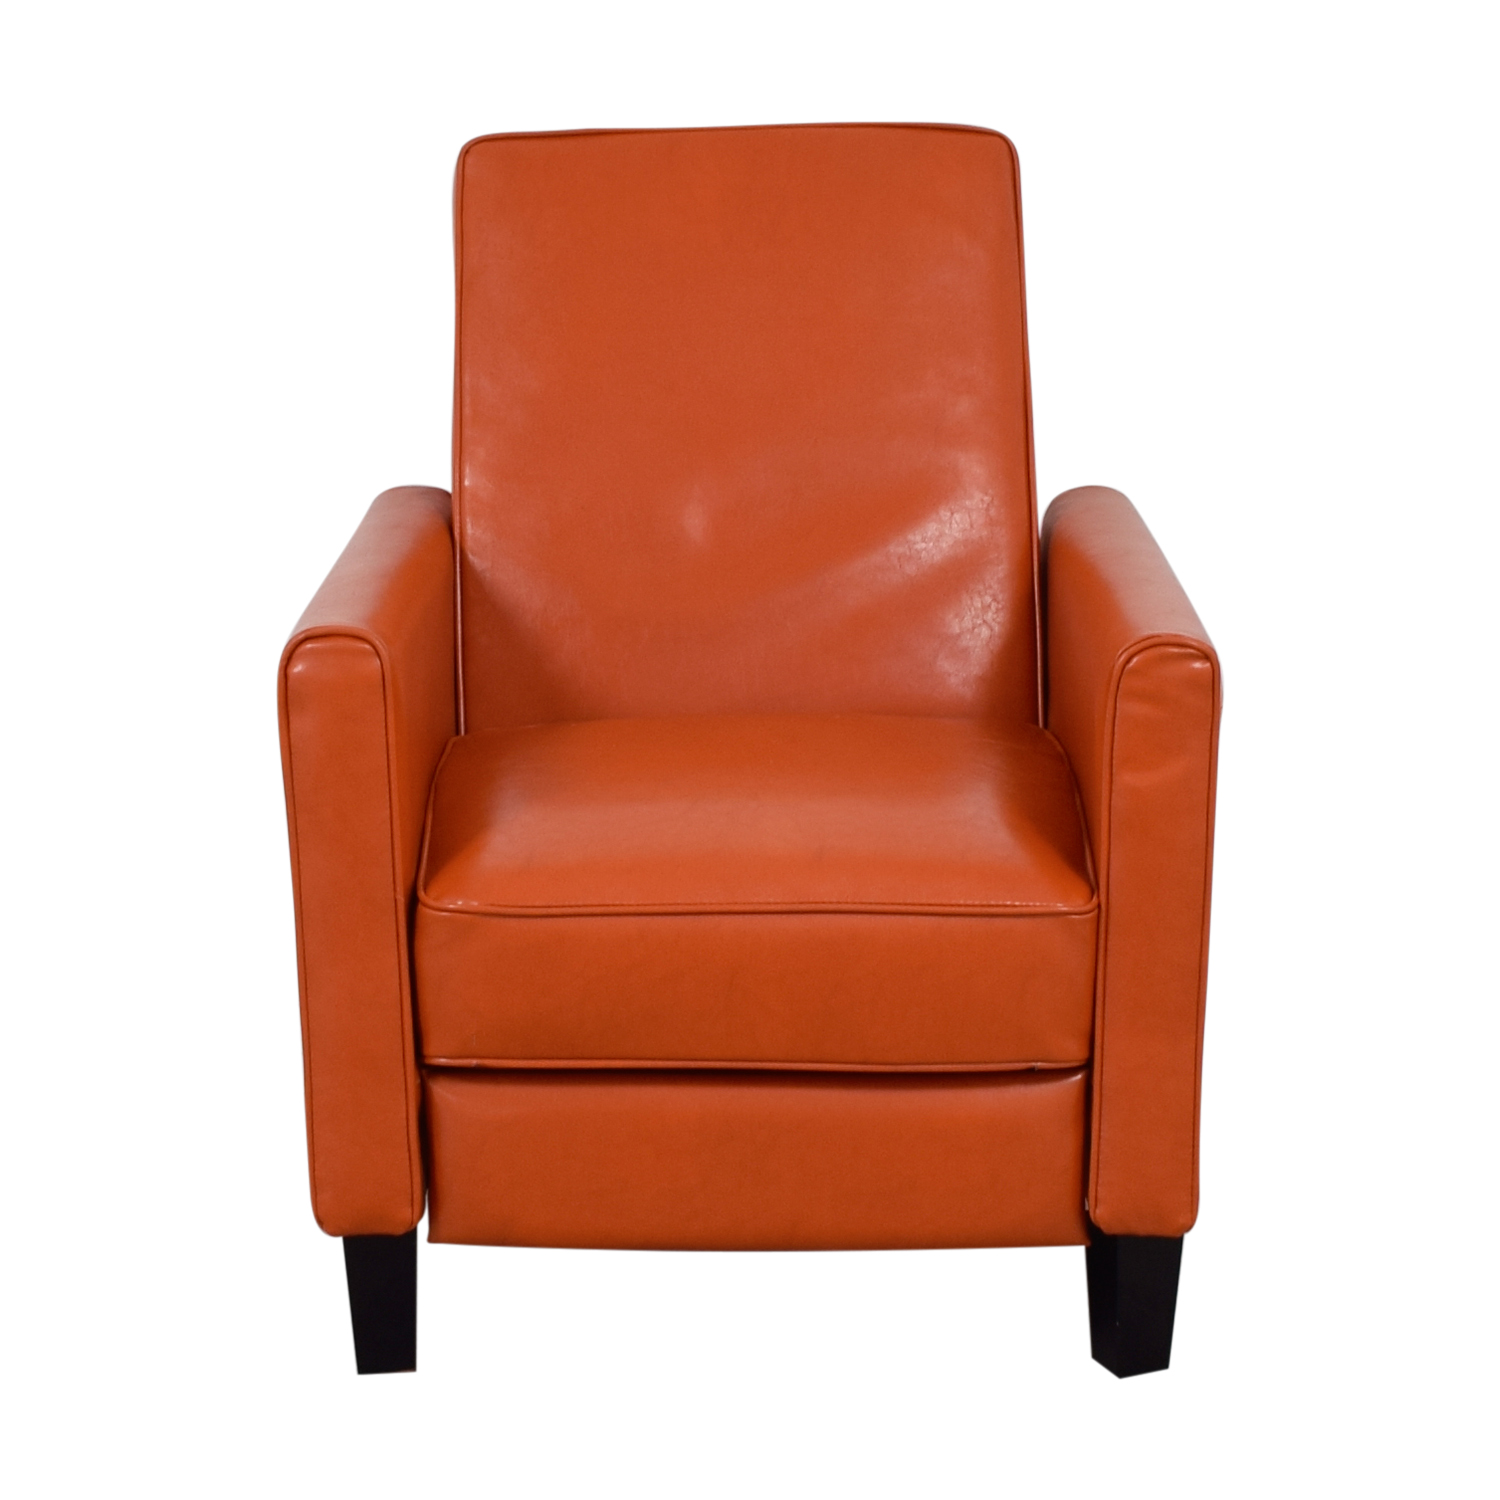 Christopher Knight Home Christopher Knight Home Darvis Orange Bonded Leather Recliner Club Chair price